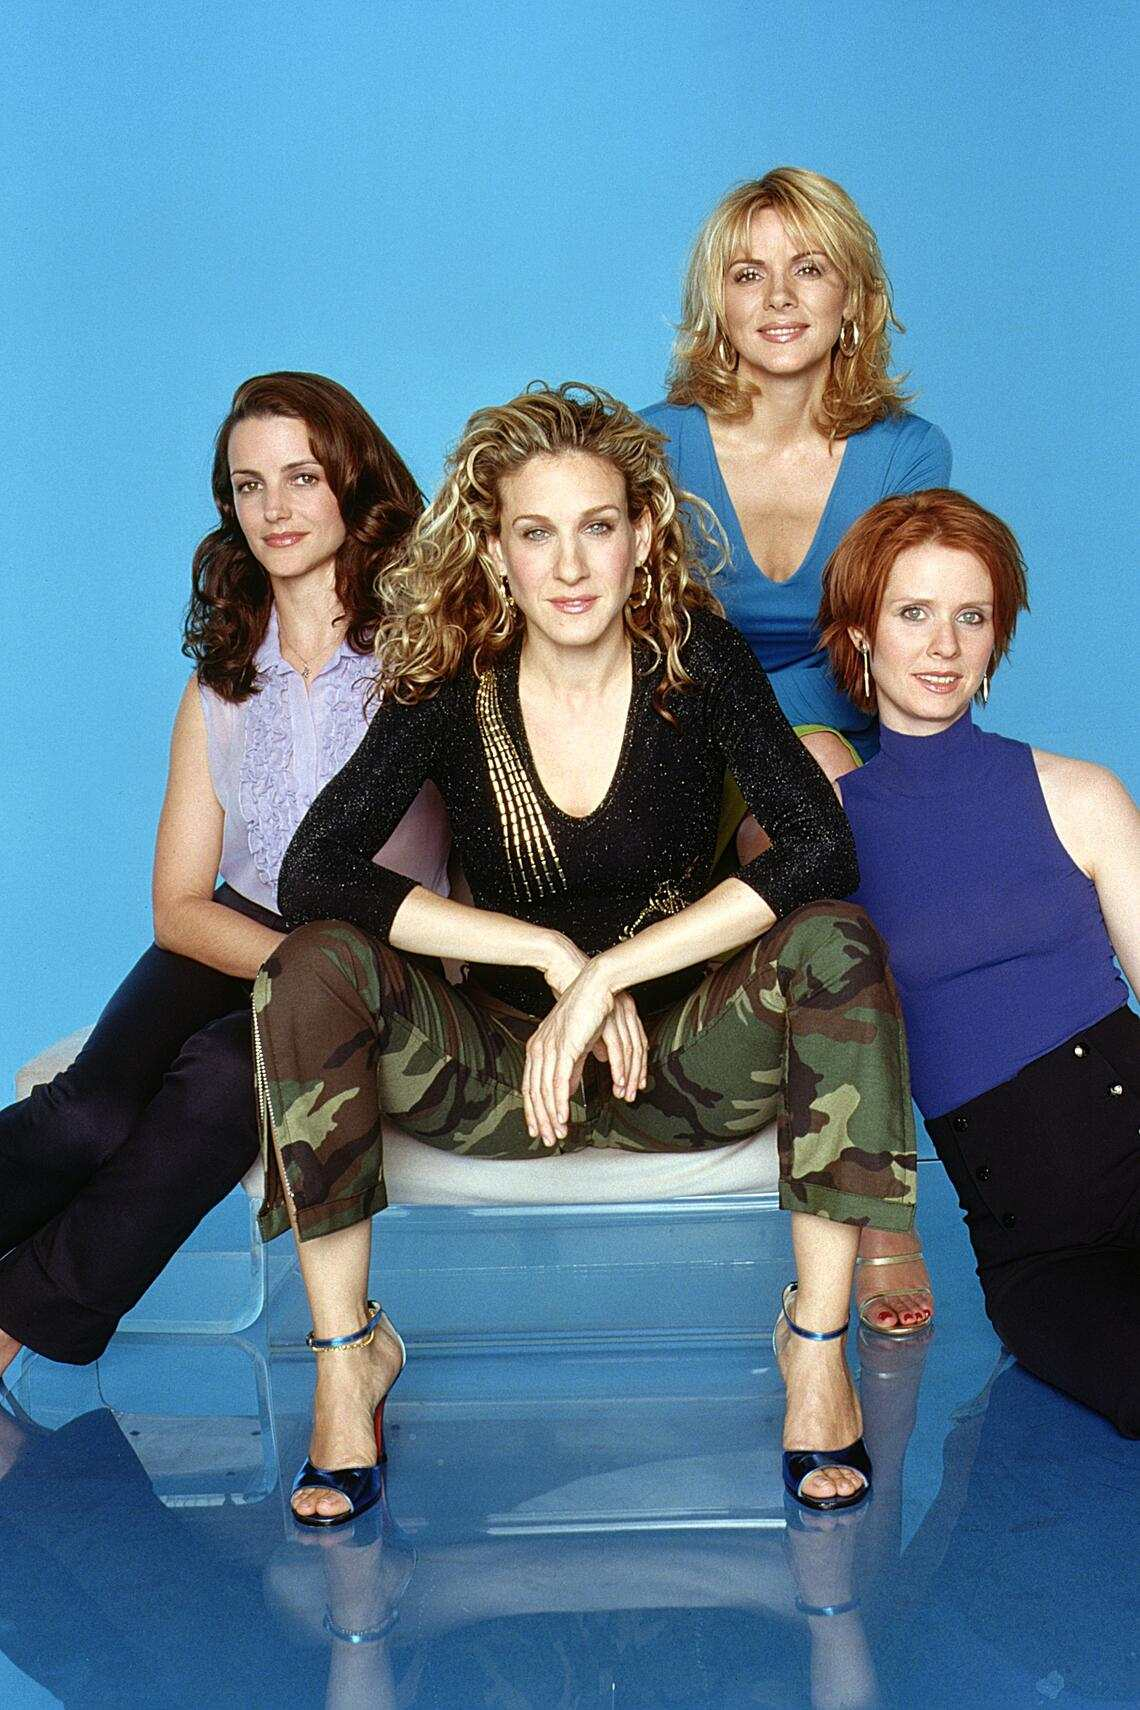 """382260 05: (L-R) Kristin Davis, Sarah Jessica Parker, Kim Cattrall and Cynthia Nixon star in the comedy series """"Sex And The City"""" now in its third season. (Photo by HBO/Newsmakers)"""